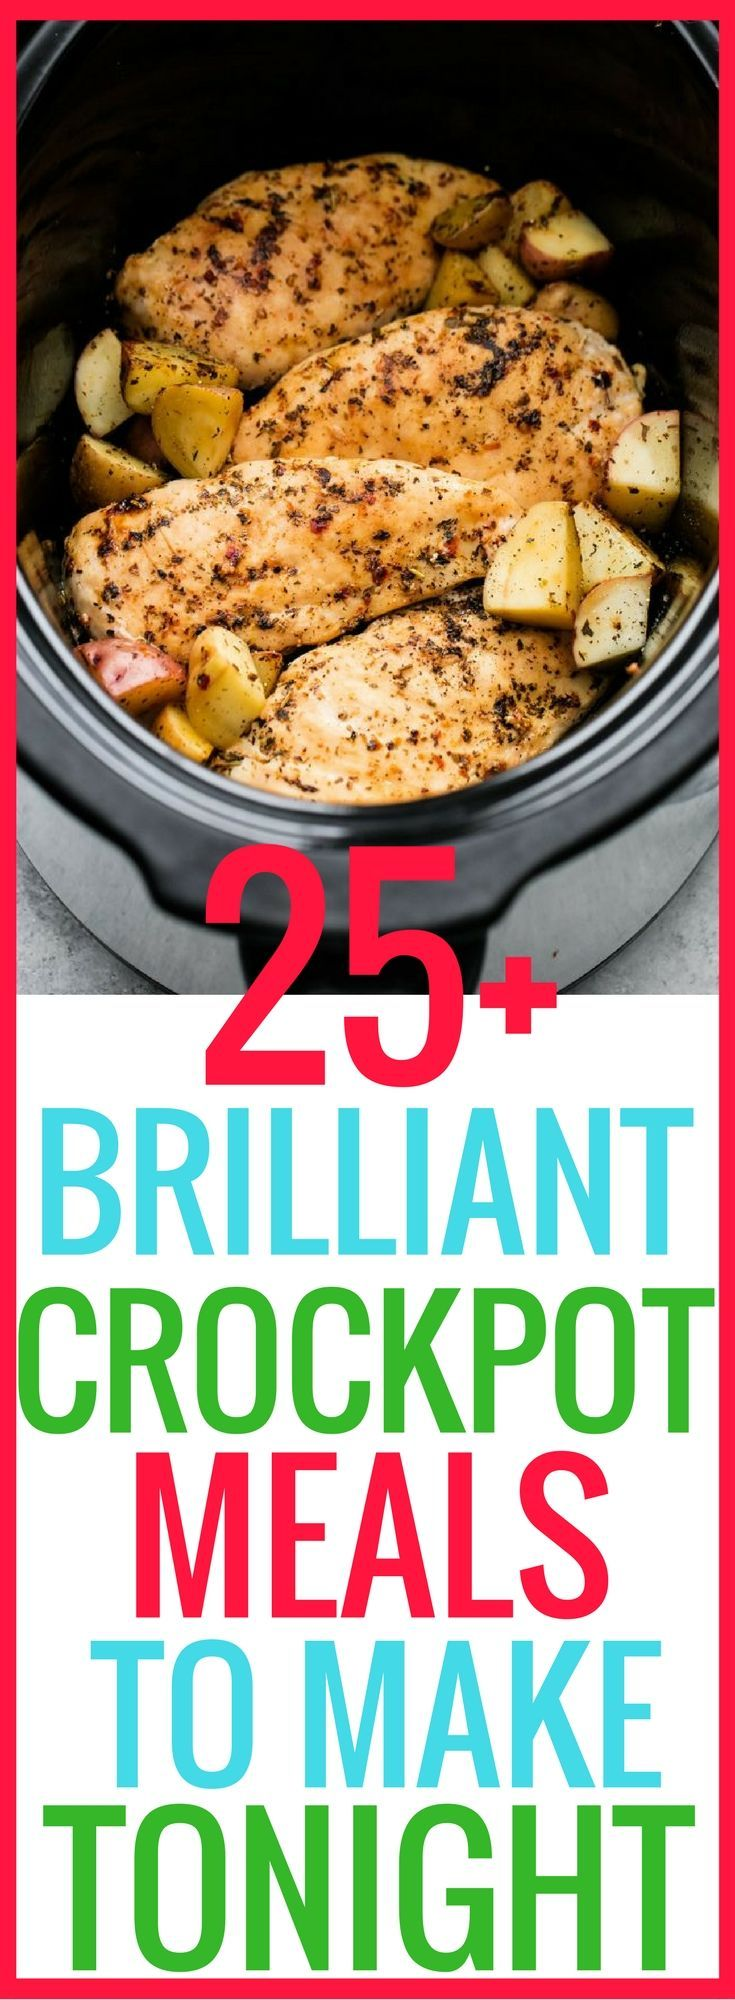 25+ Easy Crockpot Meals That Will Make You A Super Chef images